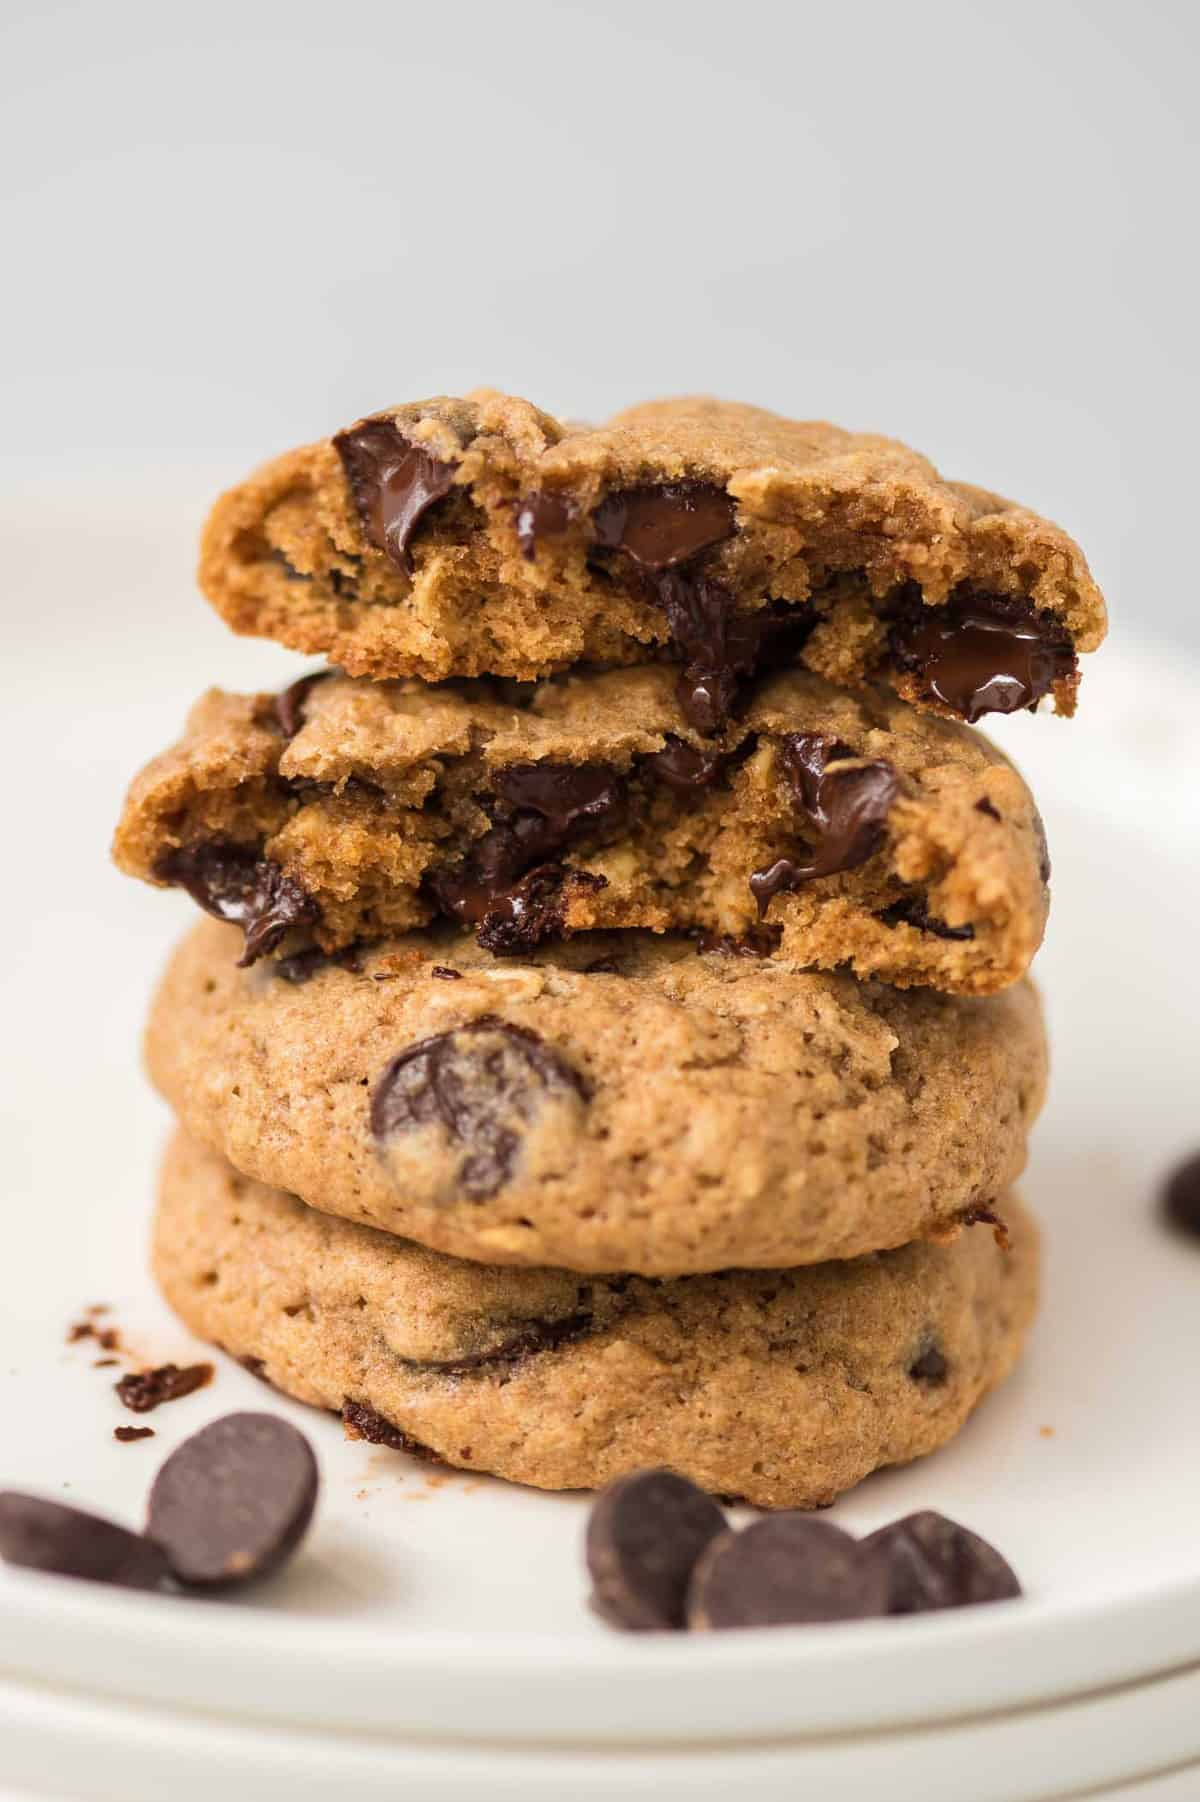 chocolate chip cookies broken in half and stacked to show the melted chocolate inside